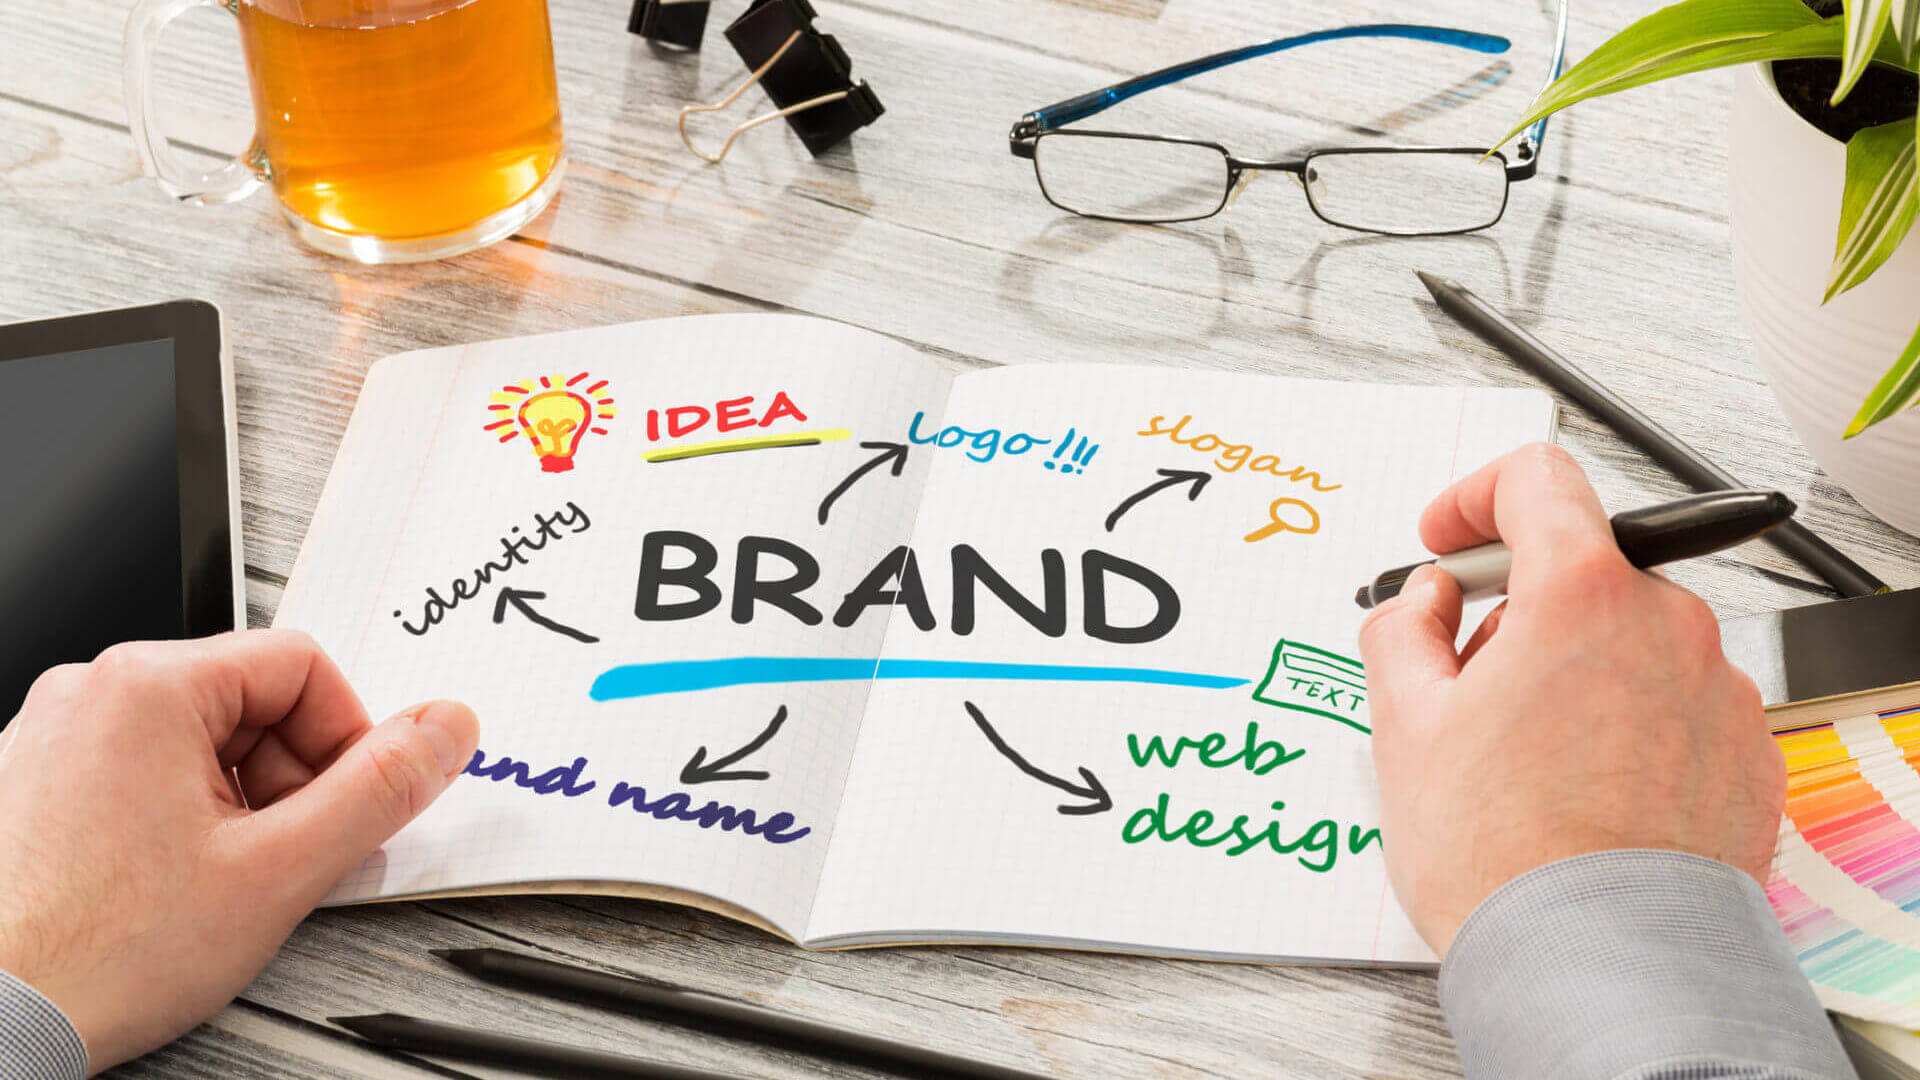 Brand Development 101 - Are You Fit to be Brand Manager?